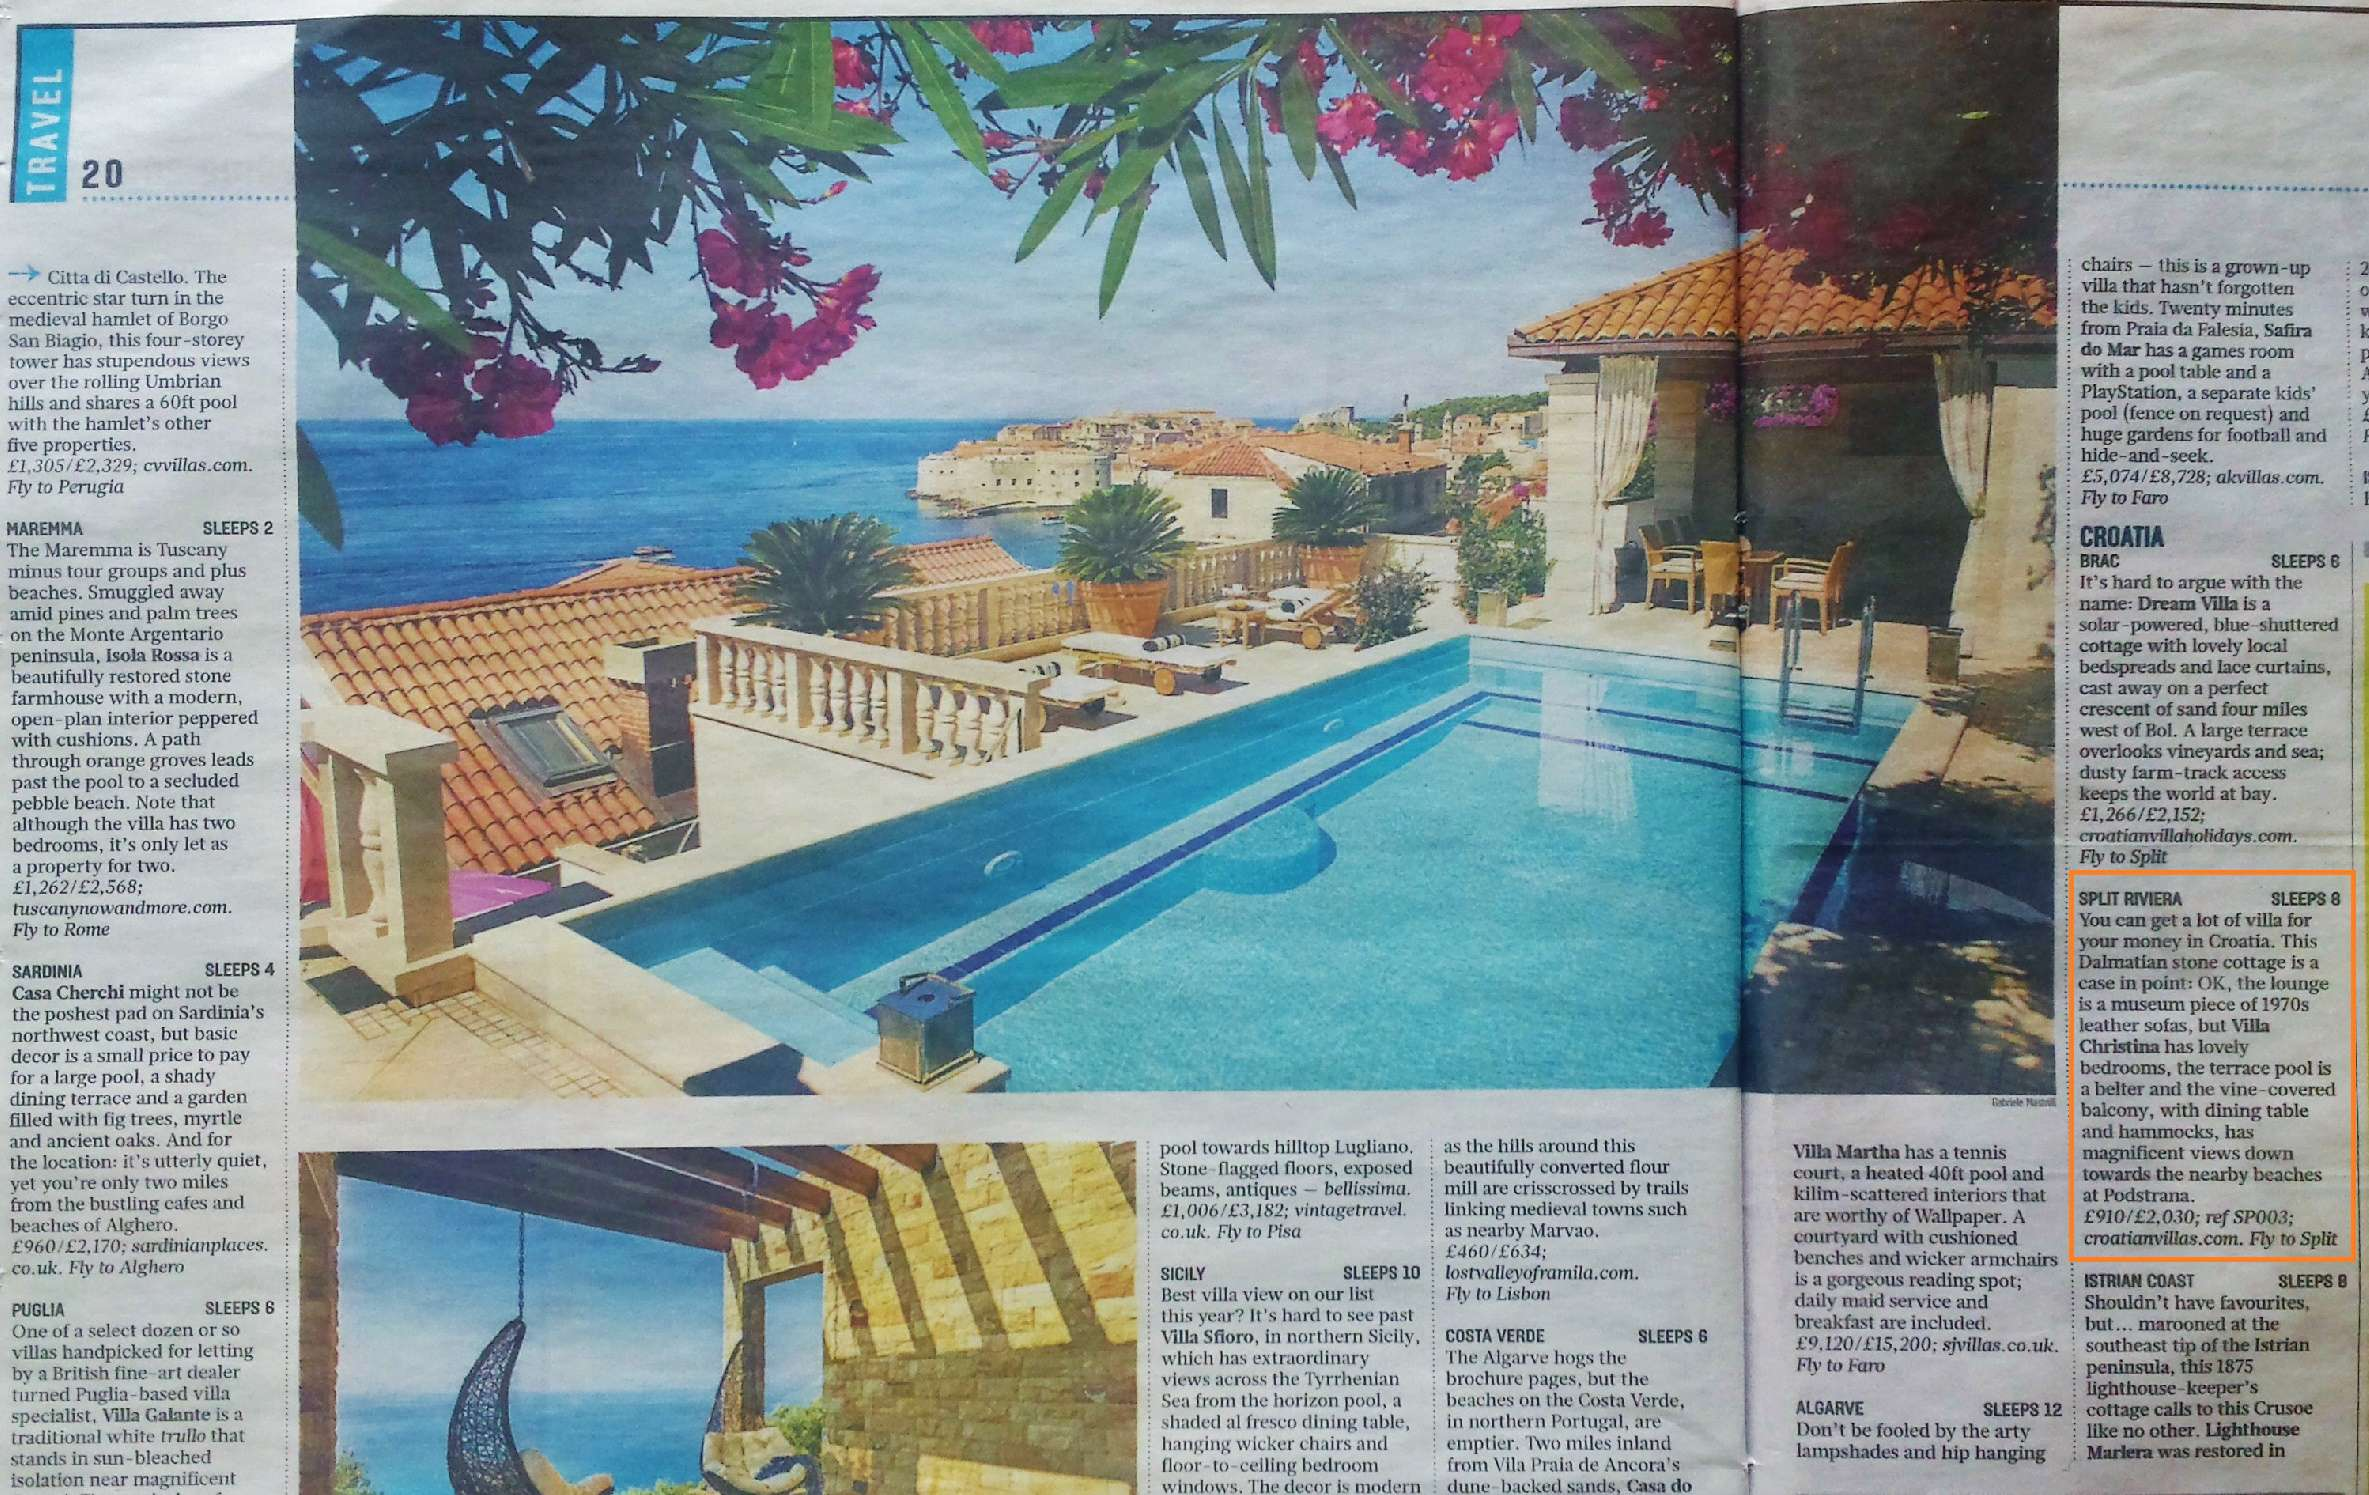 Holidays Villas Authentic Villa Holidays Croatian Villas As Featured In The Press